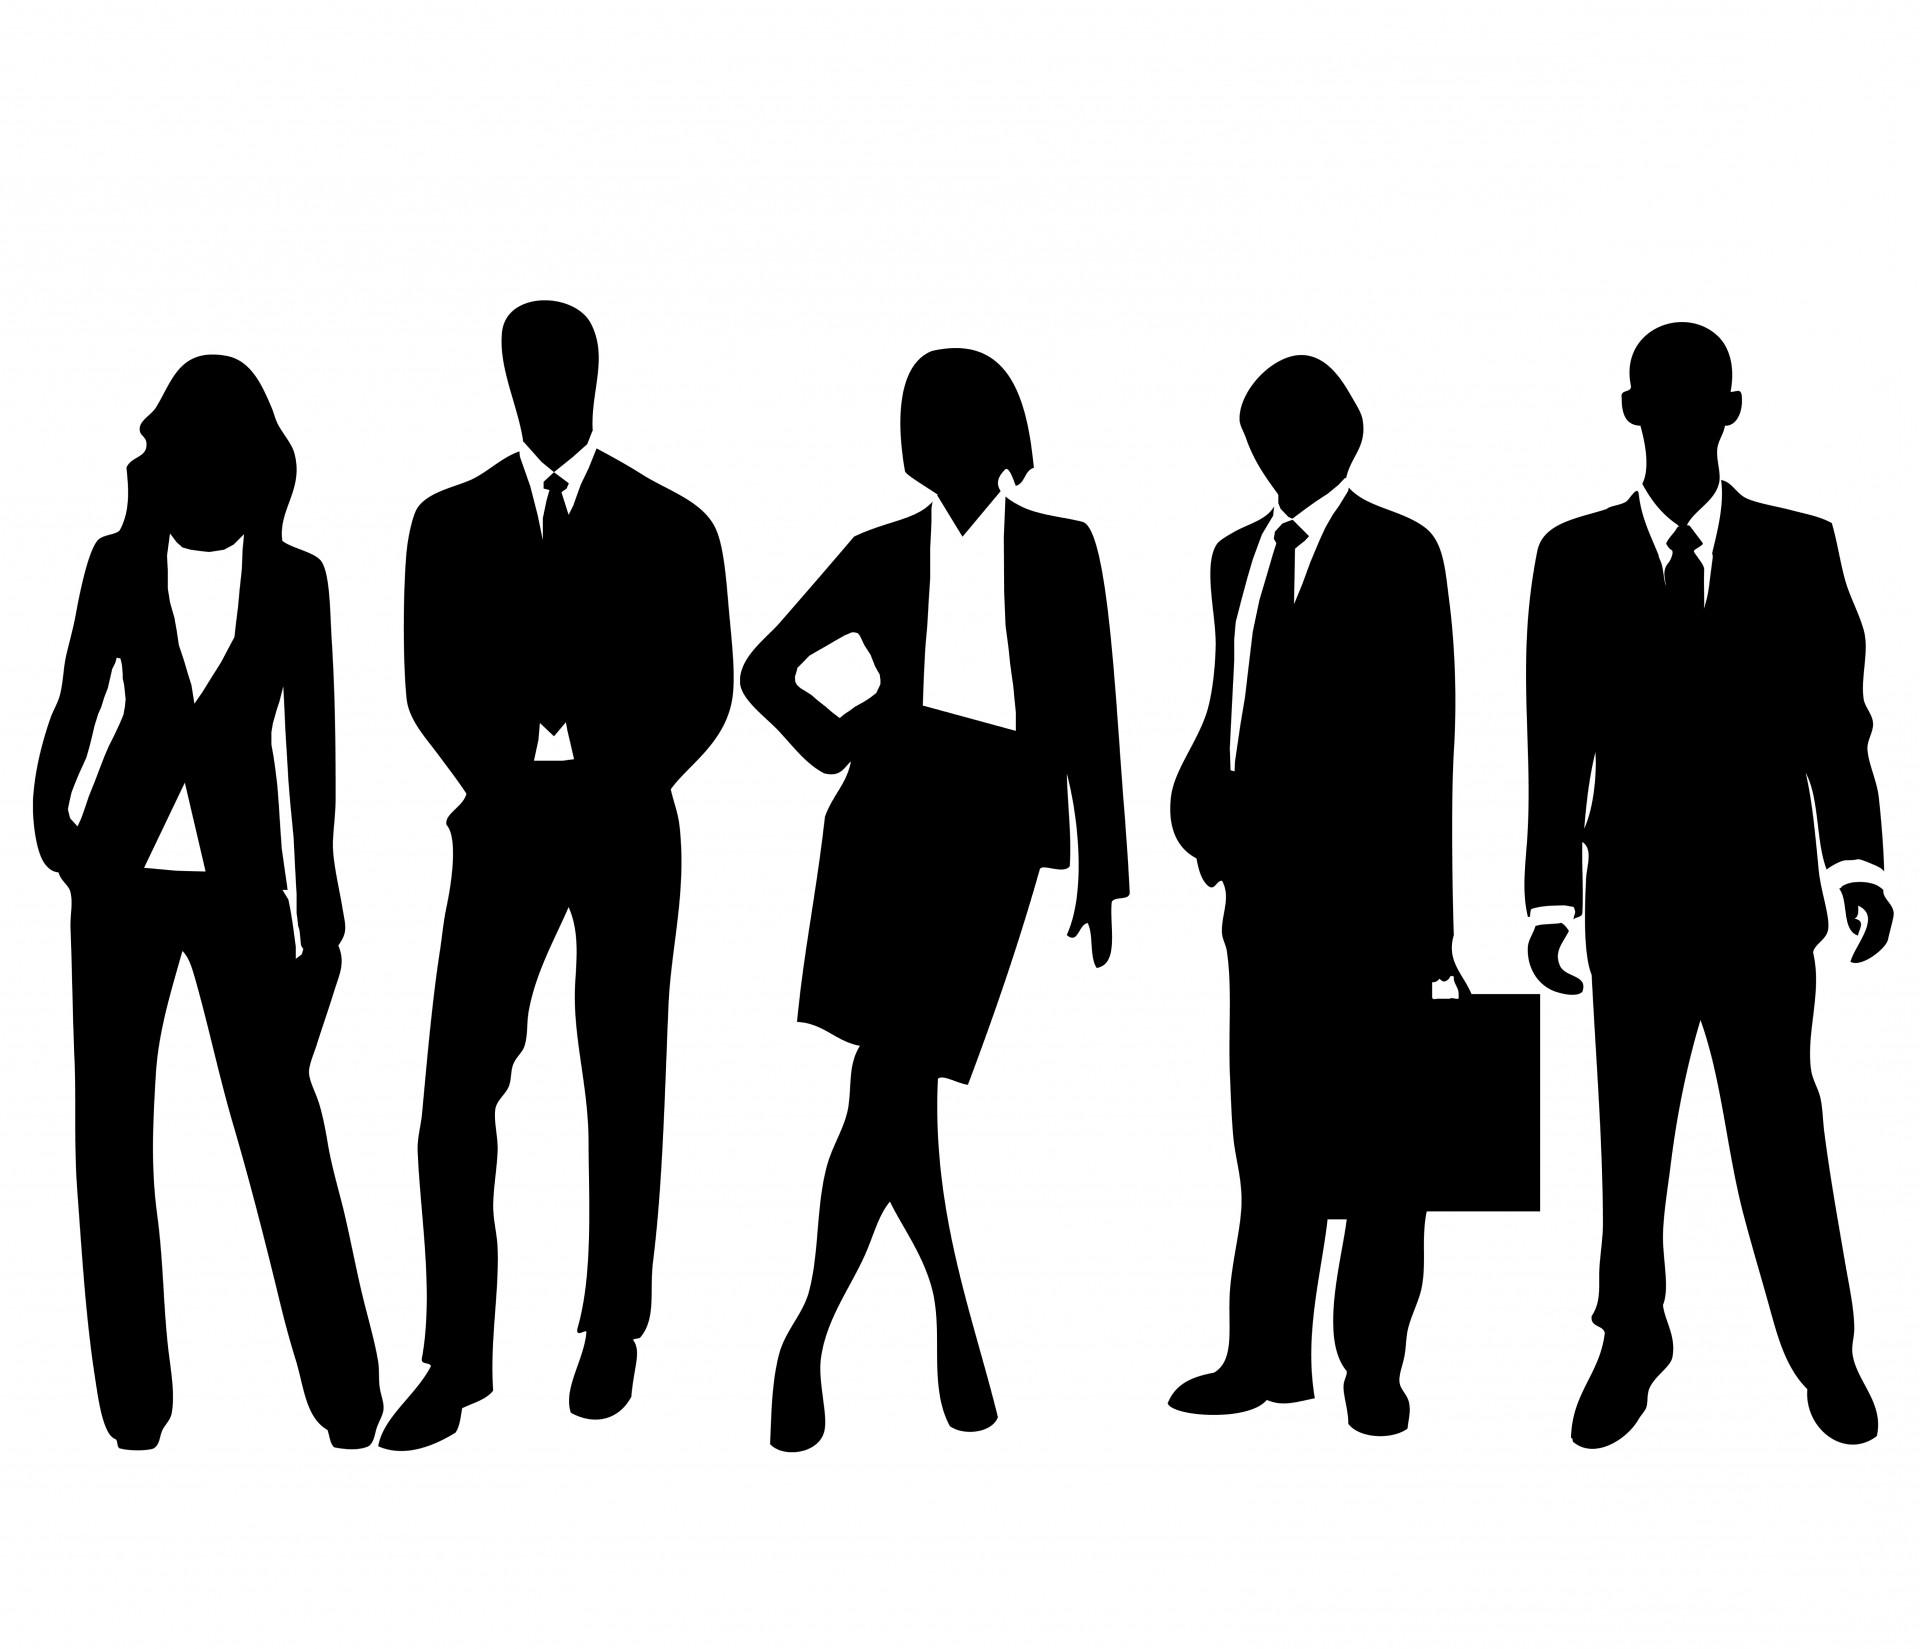 Business Clipart Images.